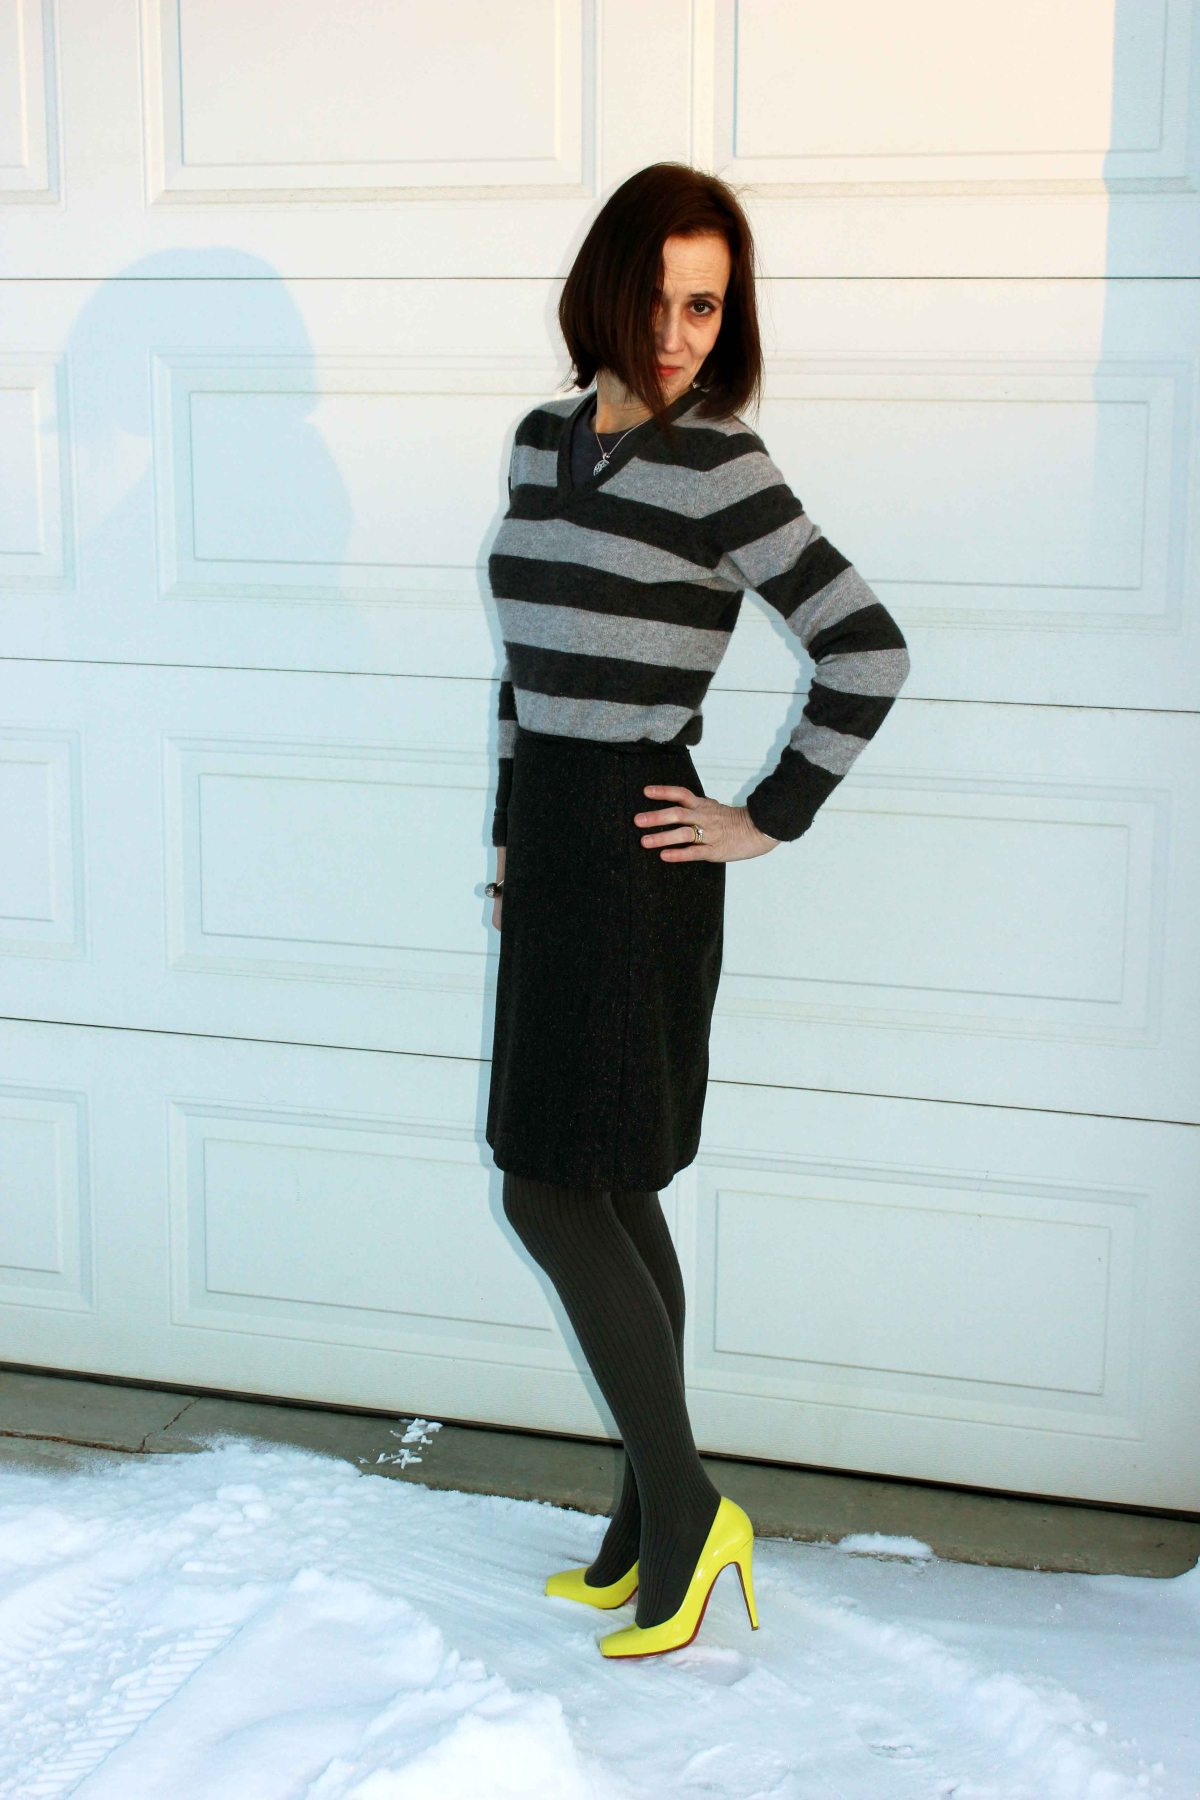 fashion blogger in monochromatic gray outfit with a pop of neon yellow